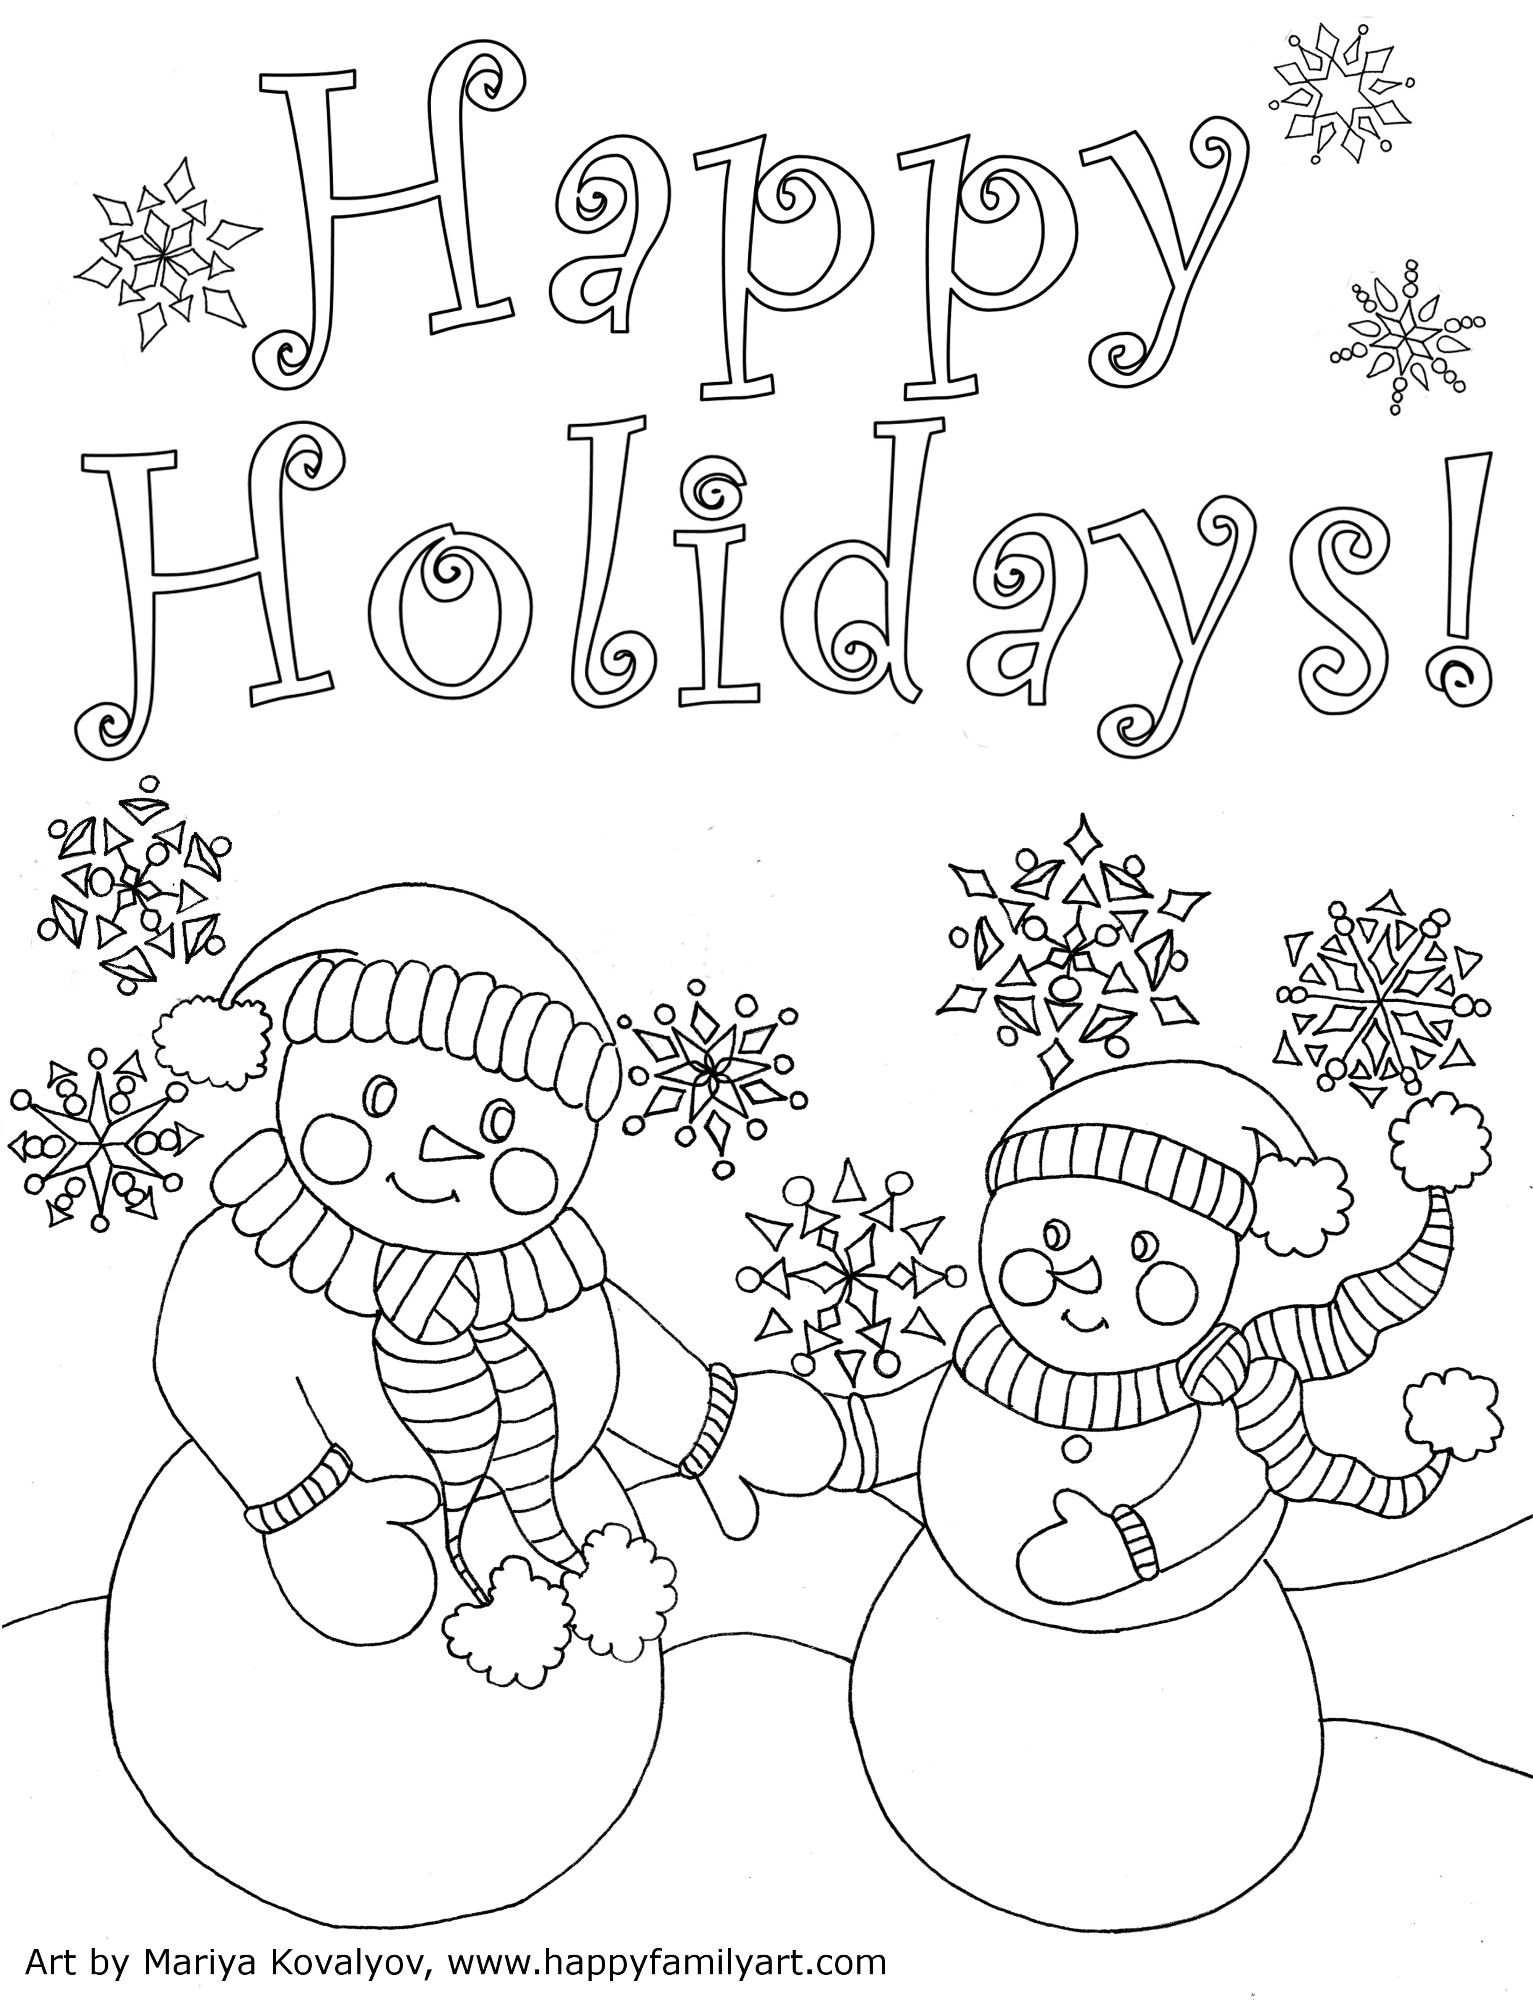 Outer Space Coloring Pages Patriotic Coloring Pages Marque Space Coloring Pages Amazing Outer